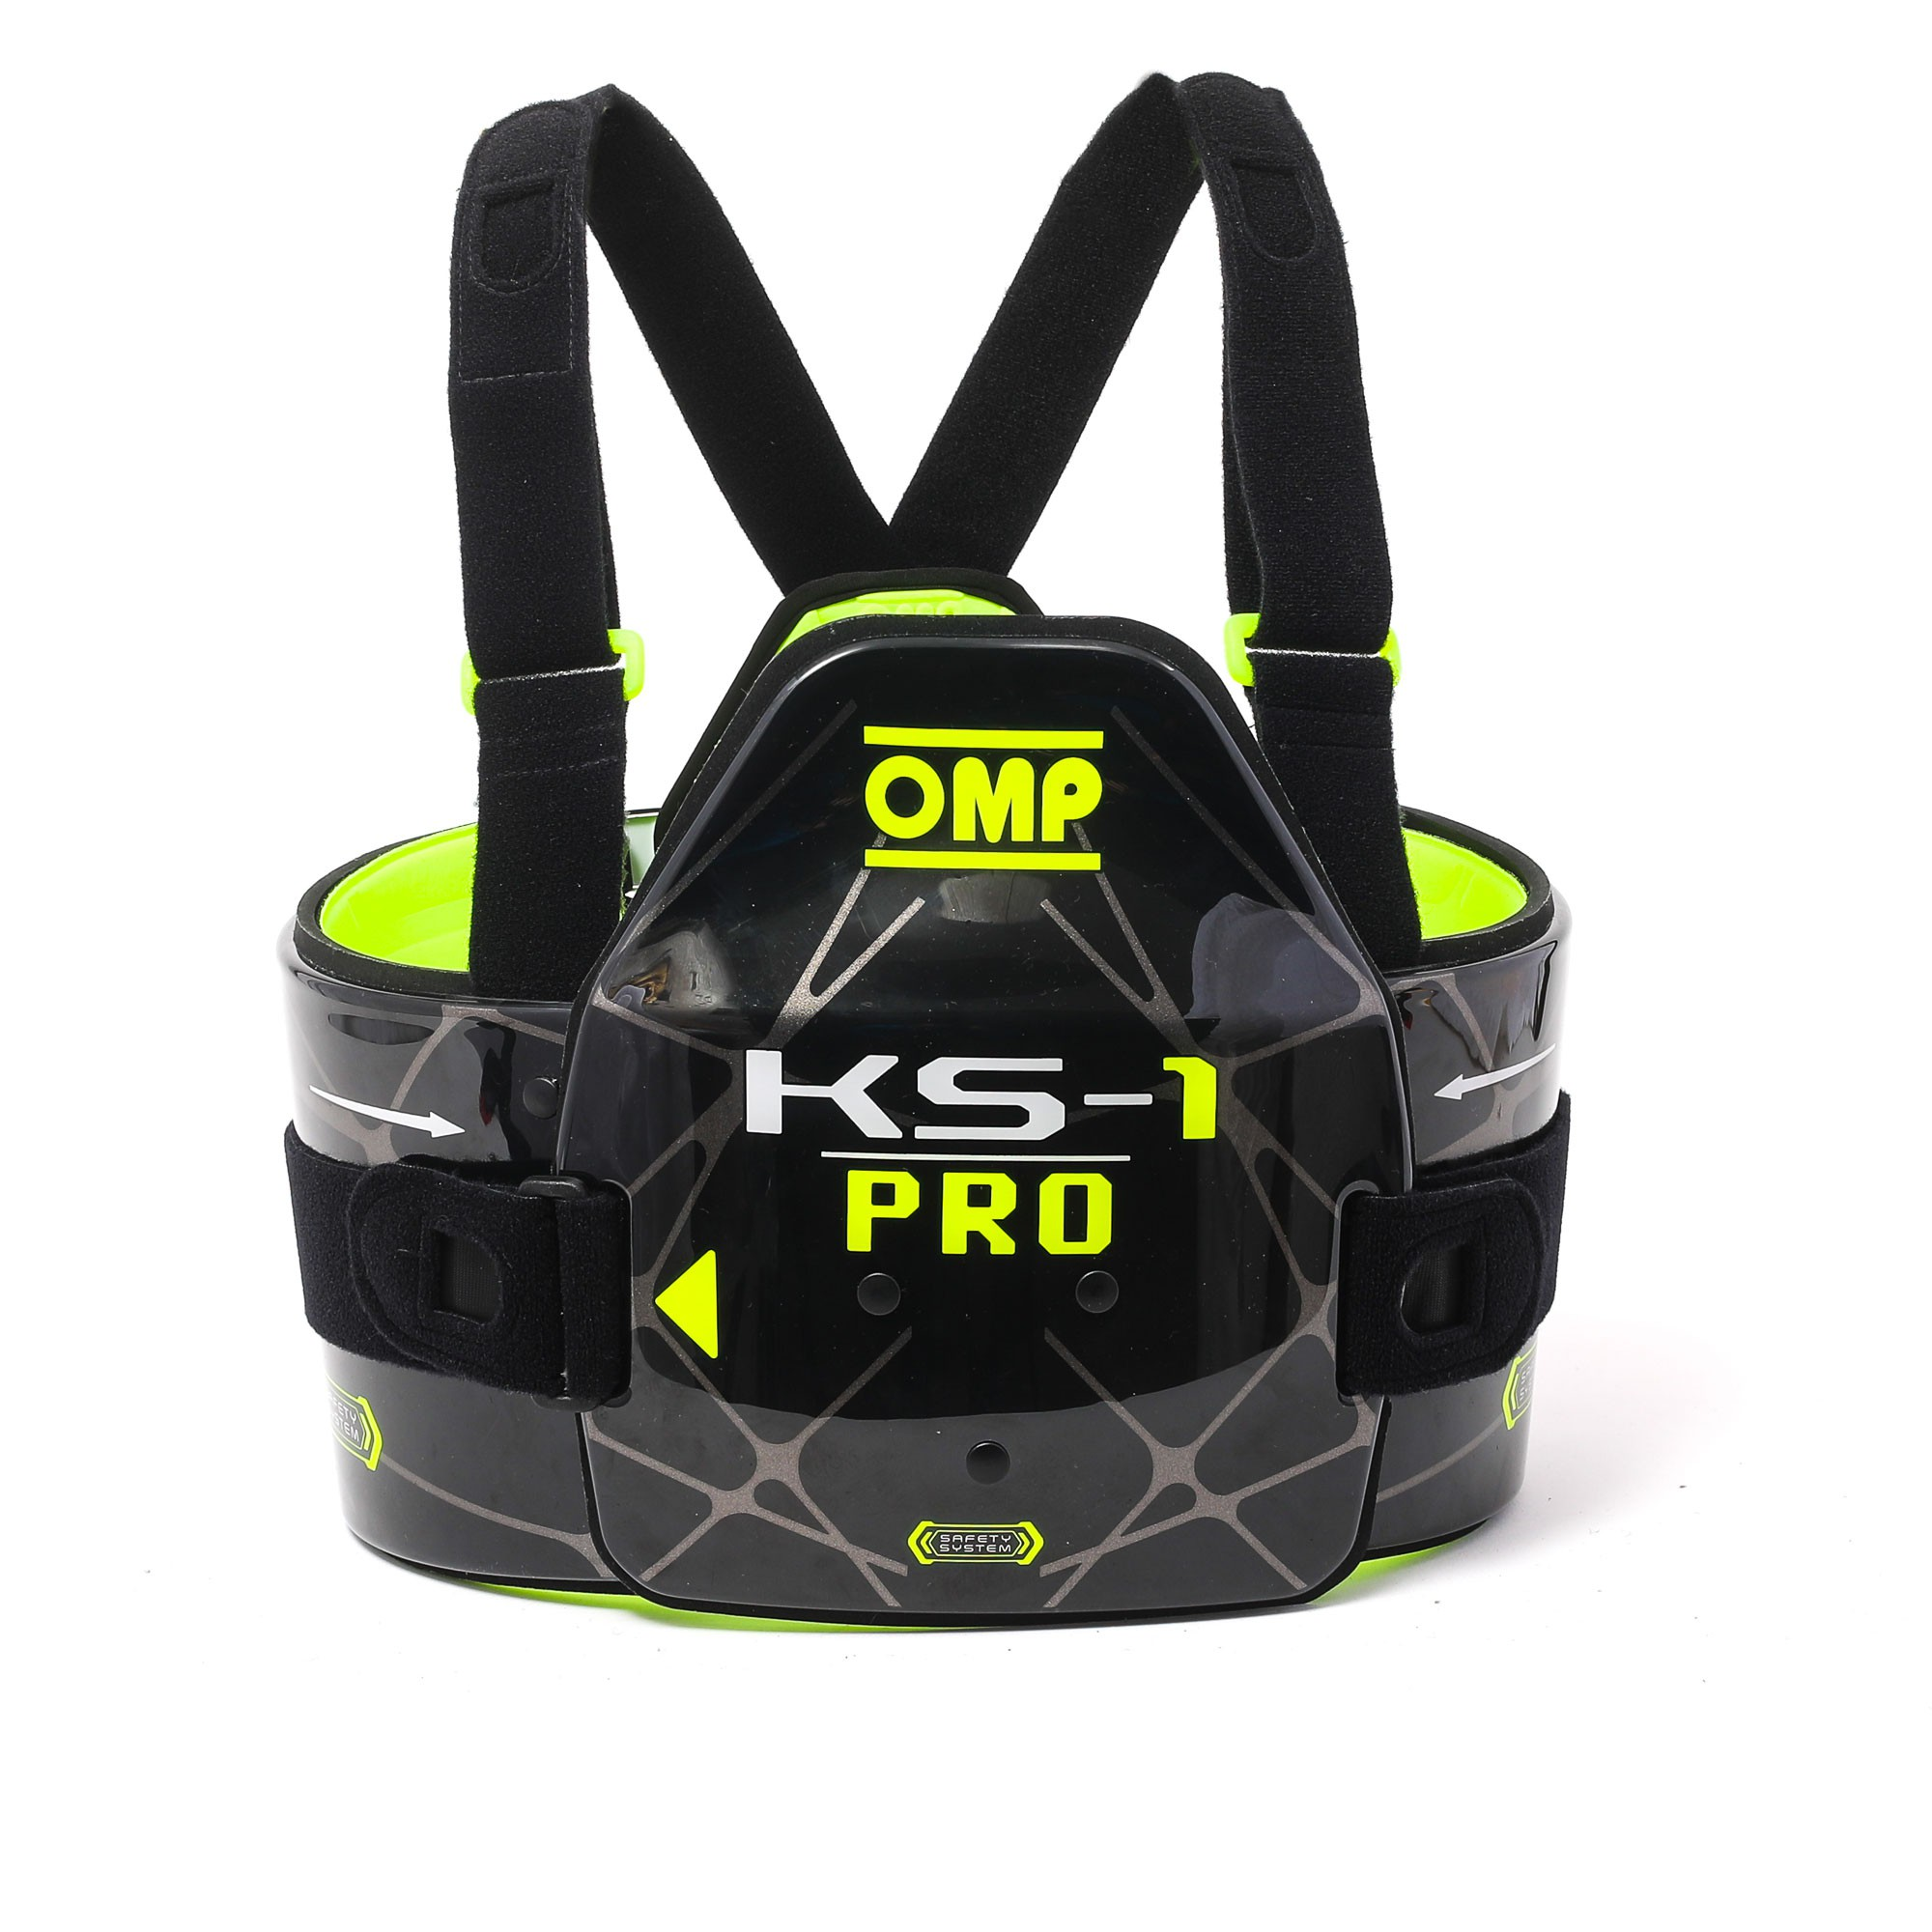 KS-1 PRO Body Protection